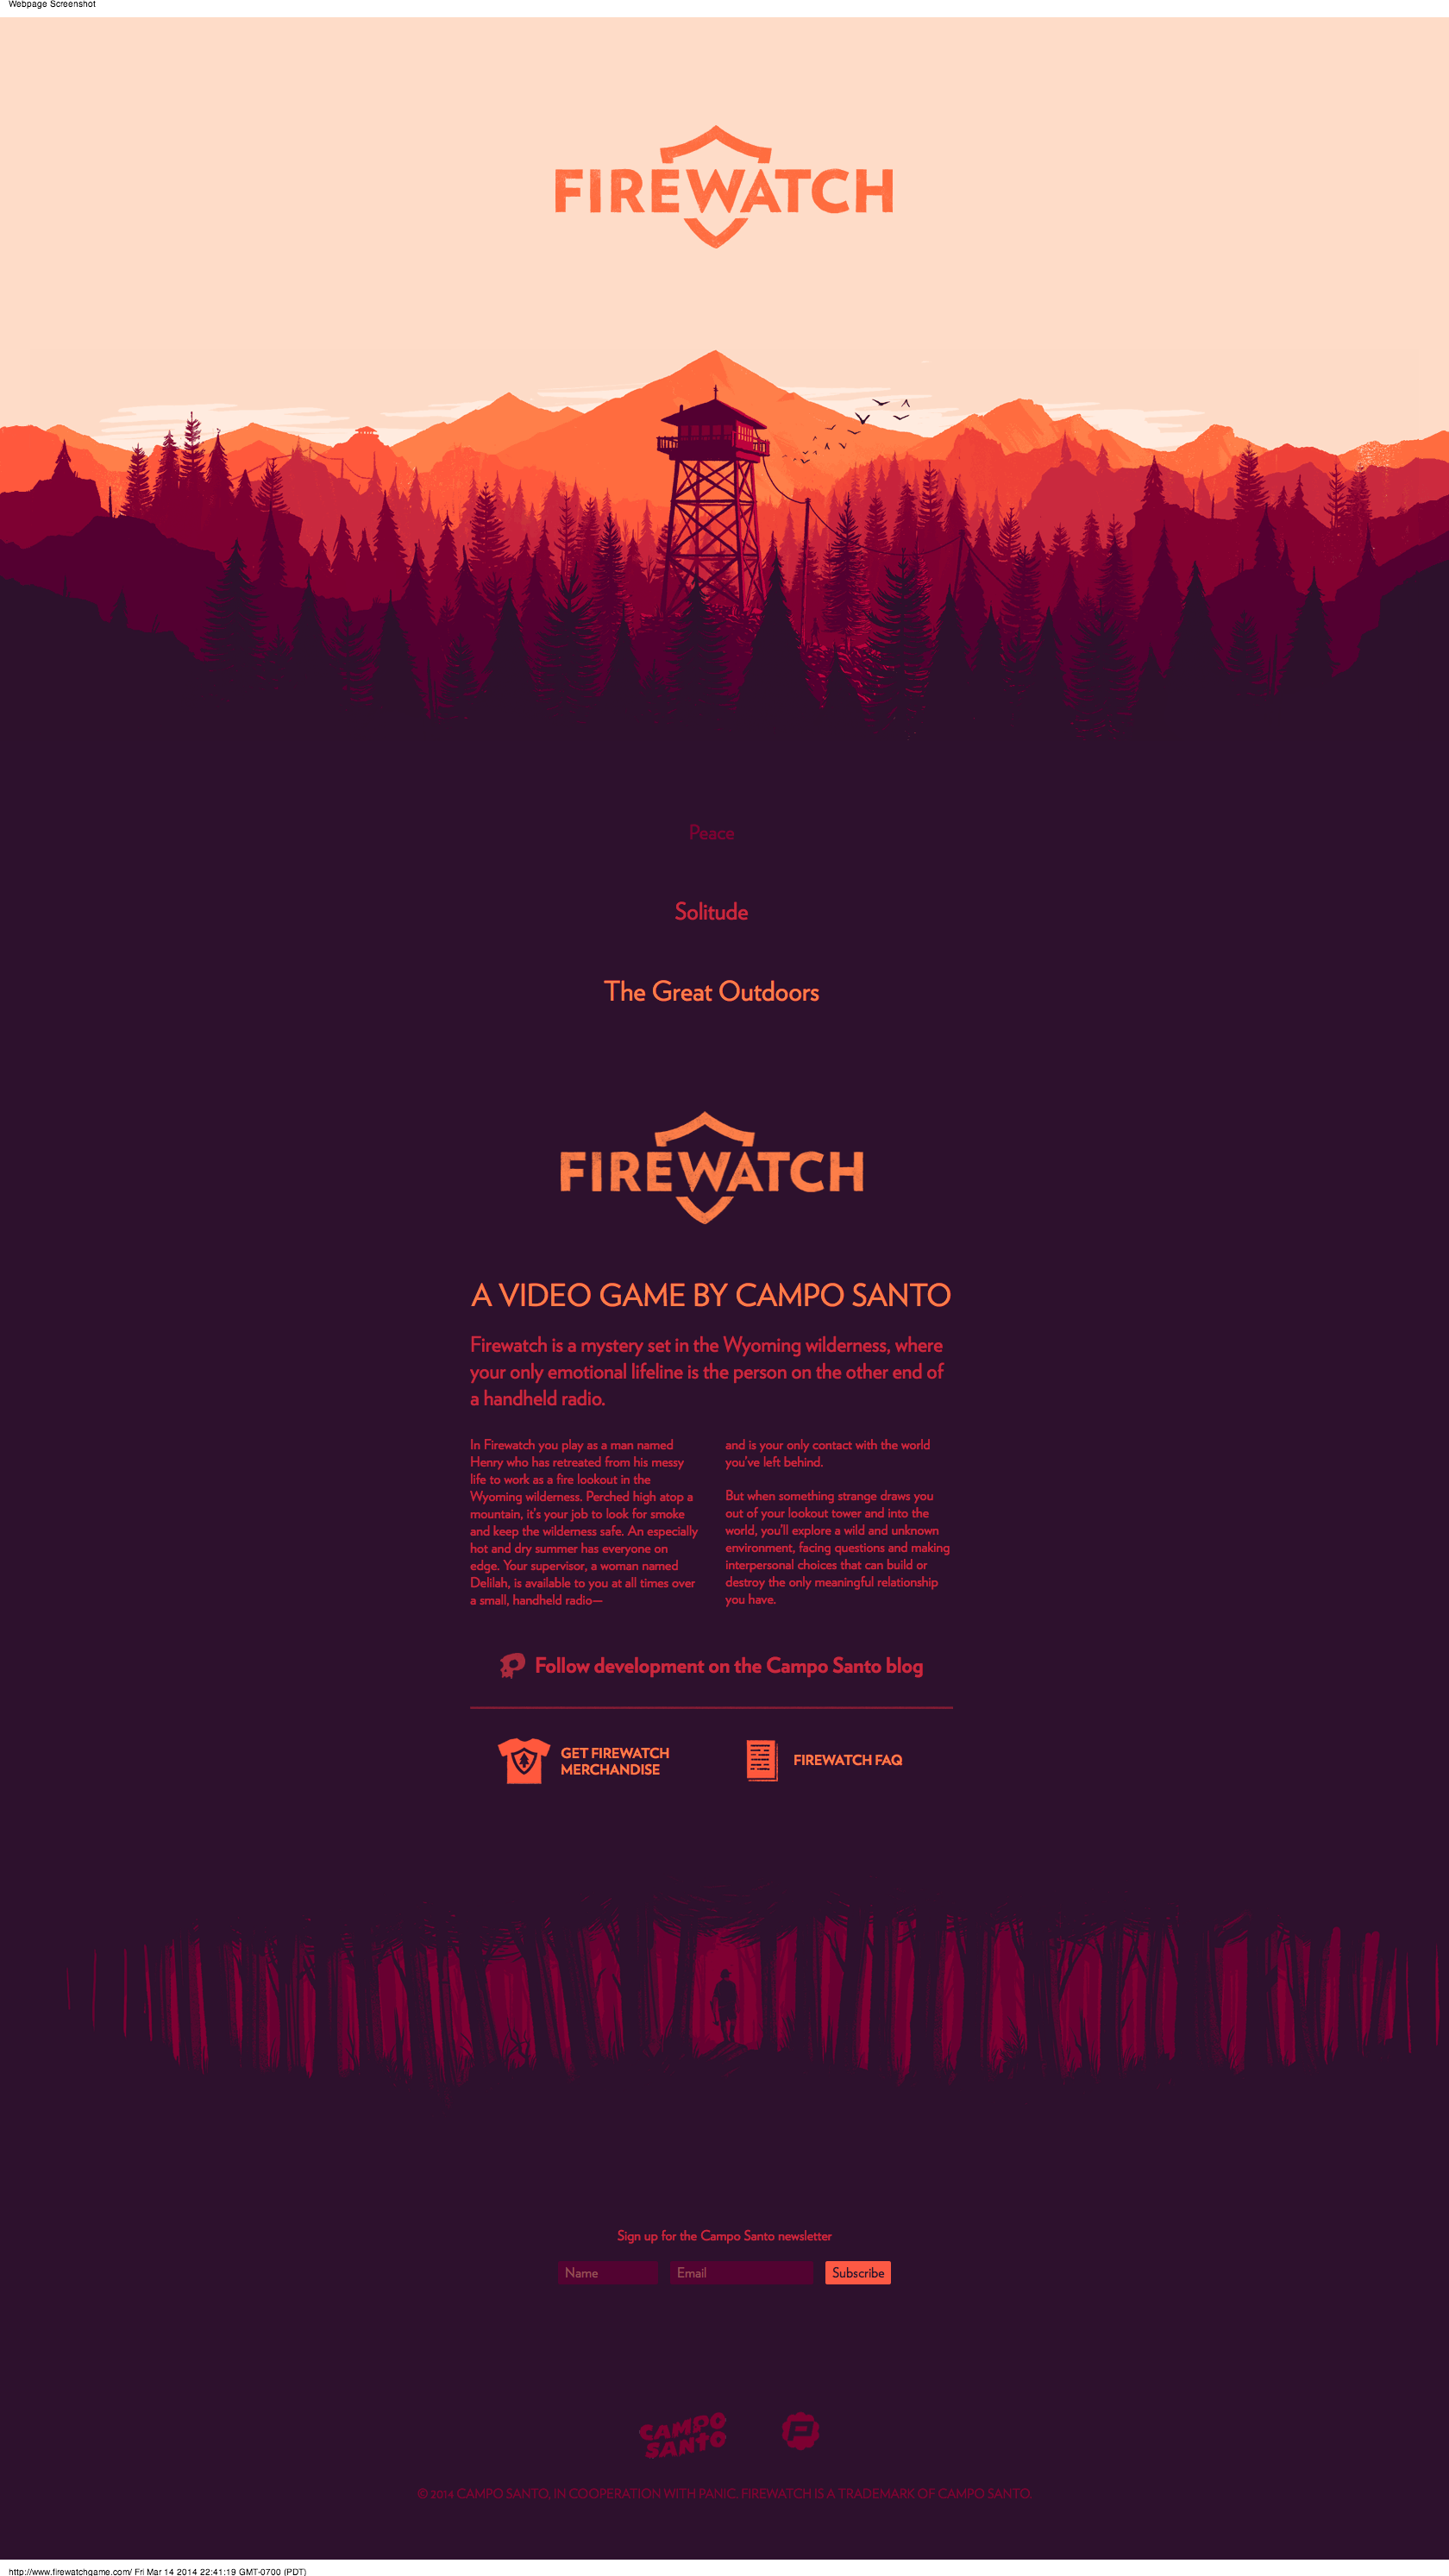 A Video Game By Campo Santo Firewatch Is A Mystery Set In The Wyoming Wilderness Where Your Only Emotion Web Design Inspiration Portfolio Web Design Firewatch